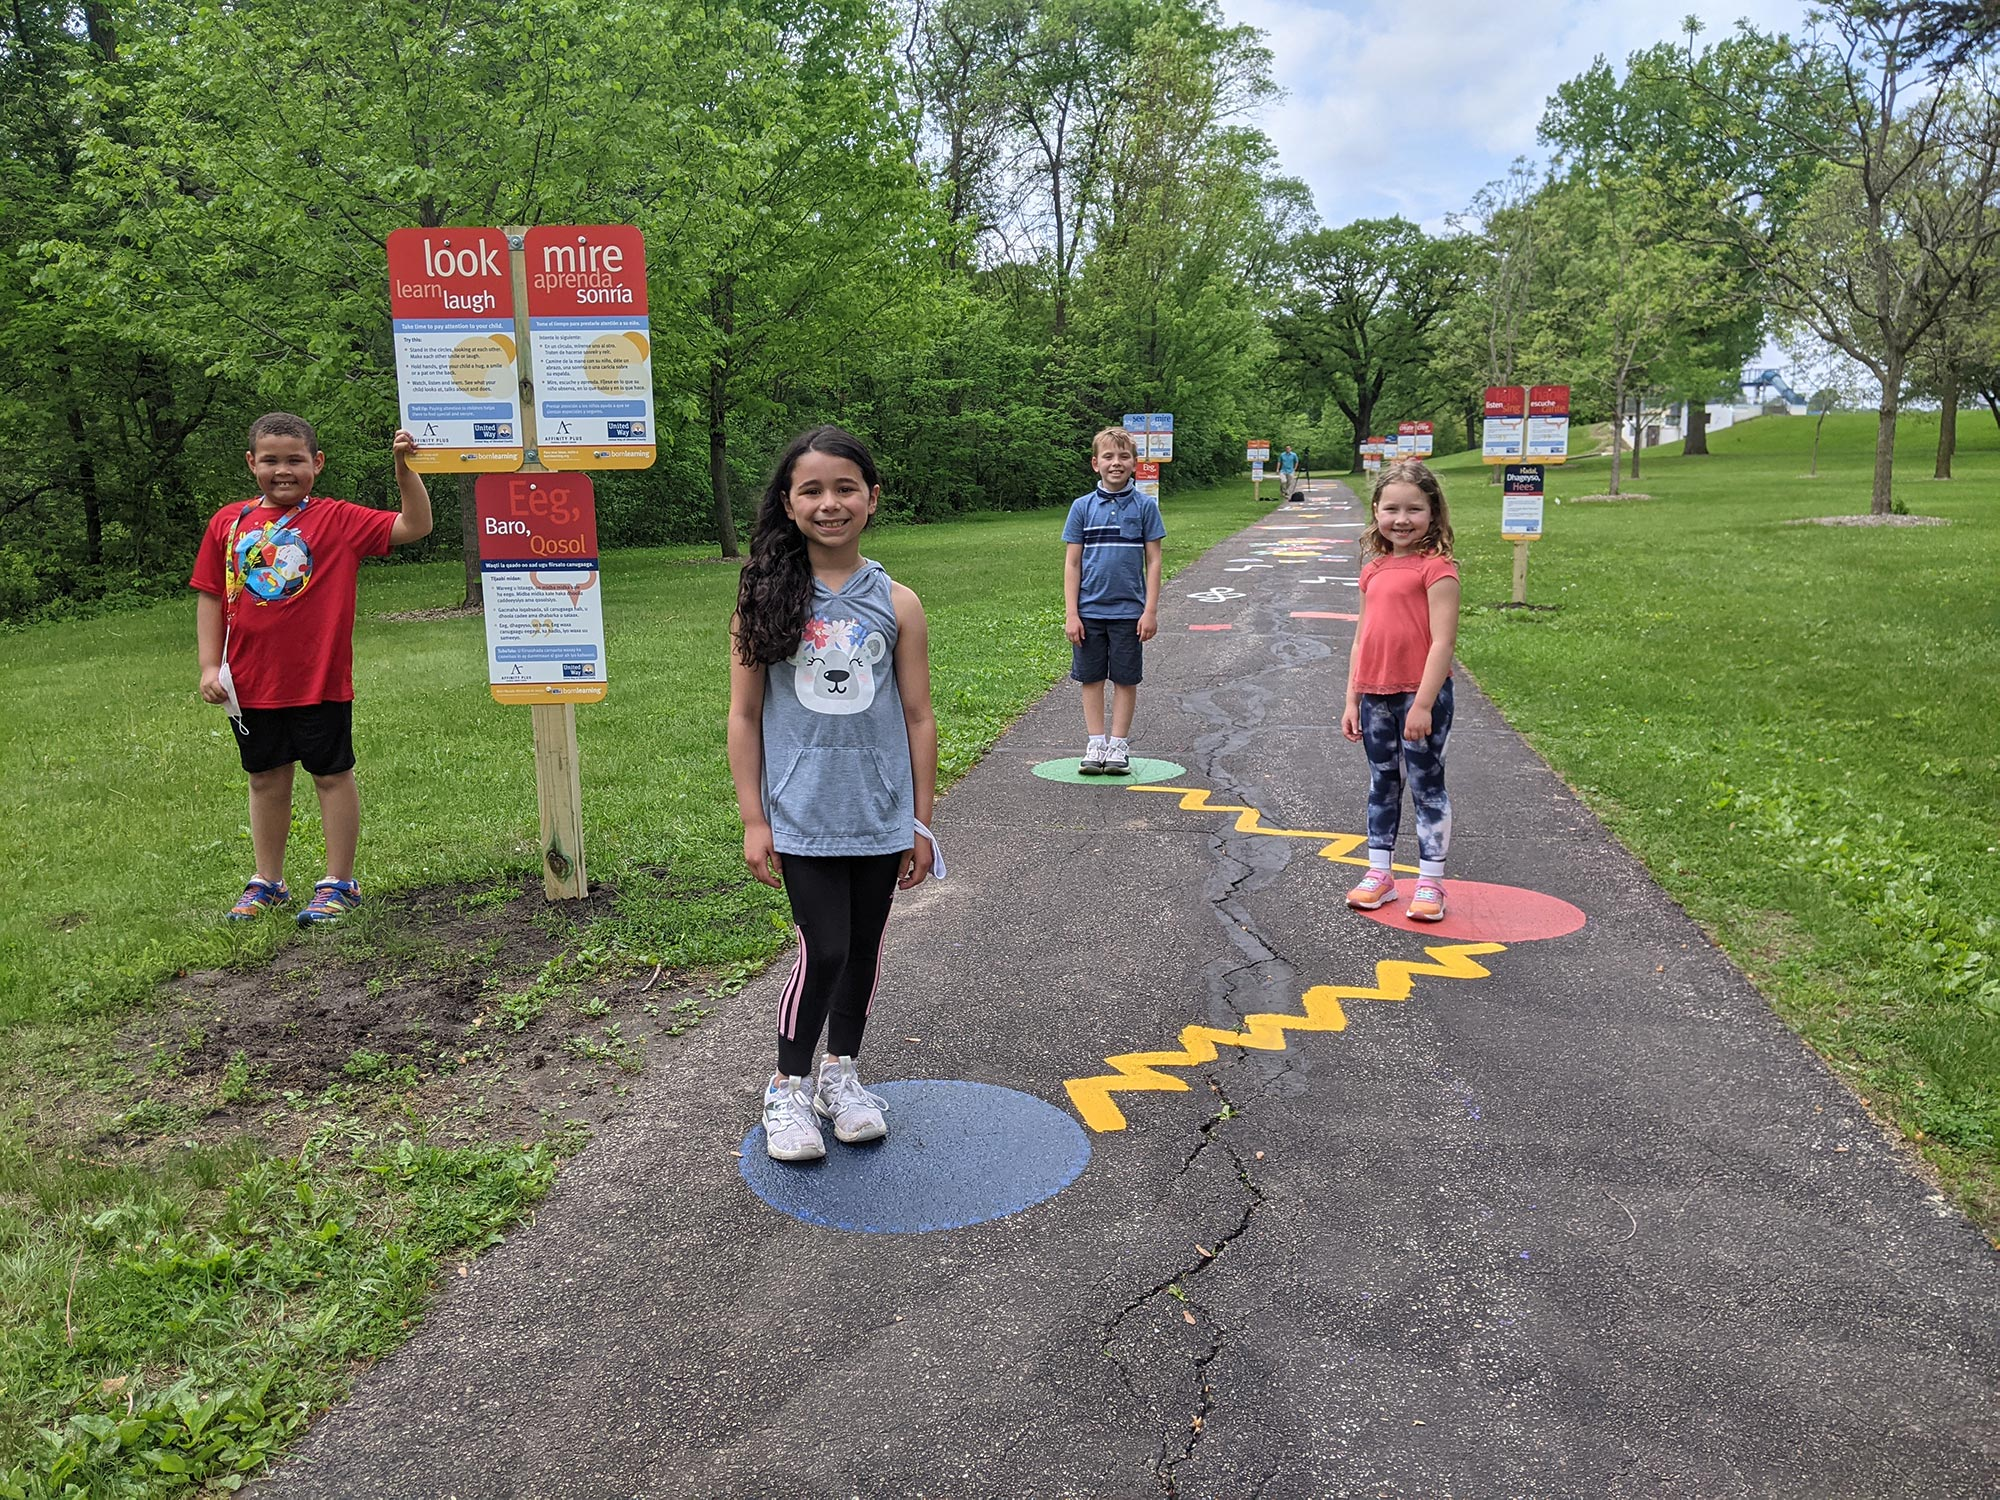 A group of children posing on a path